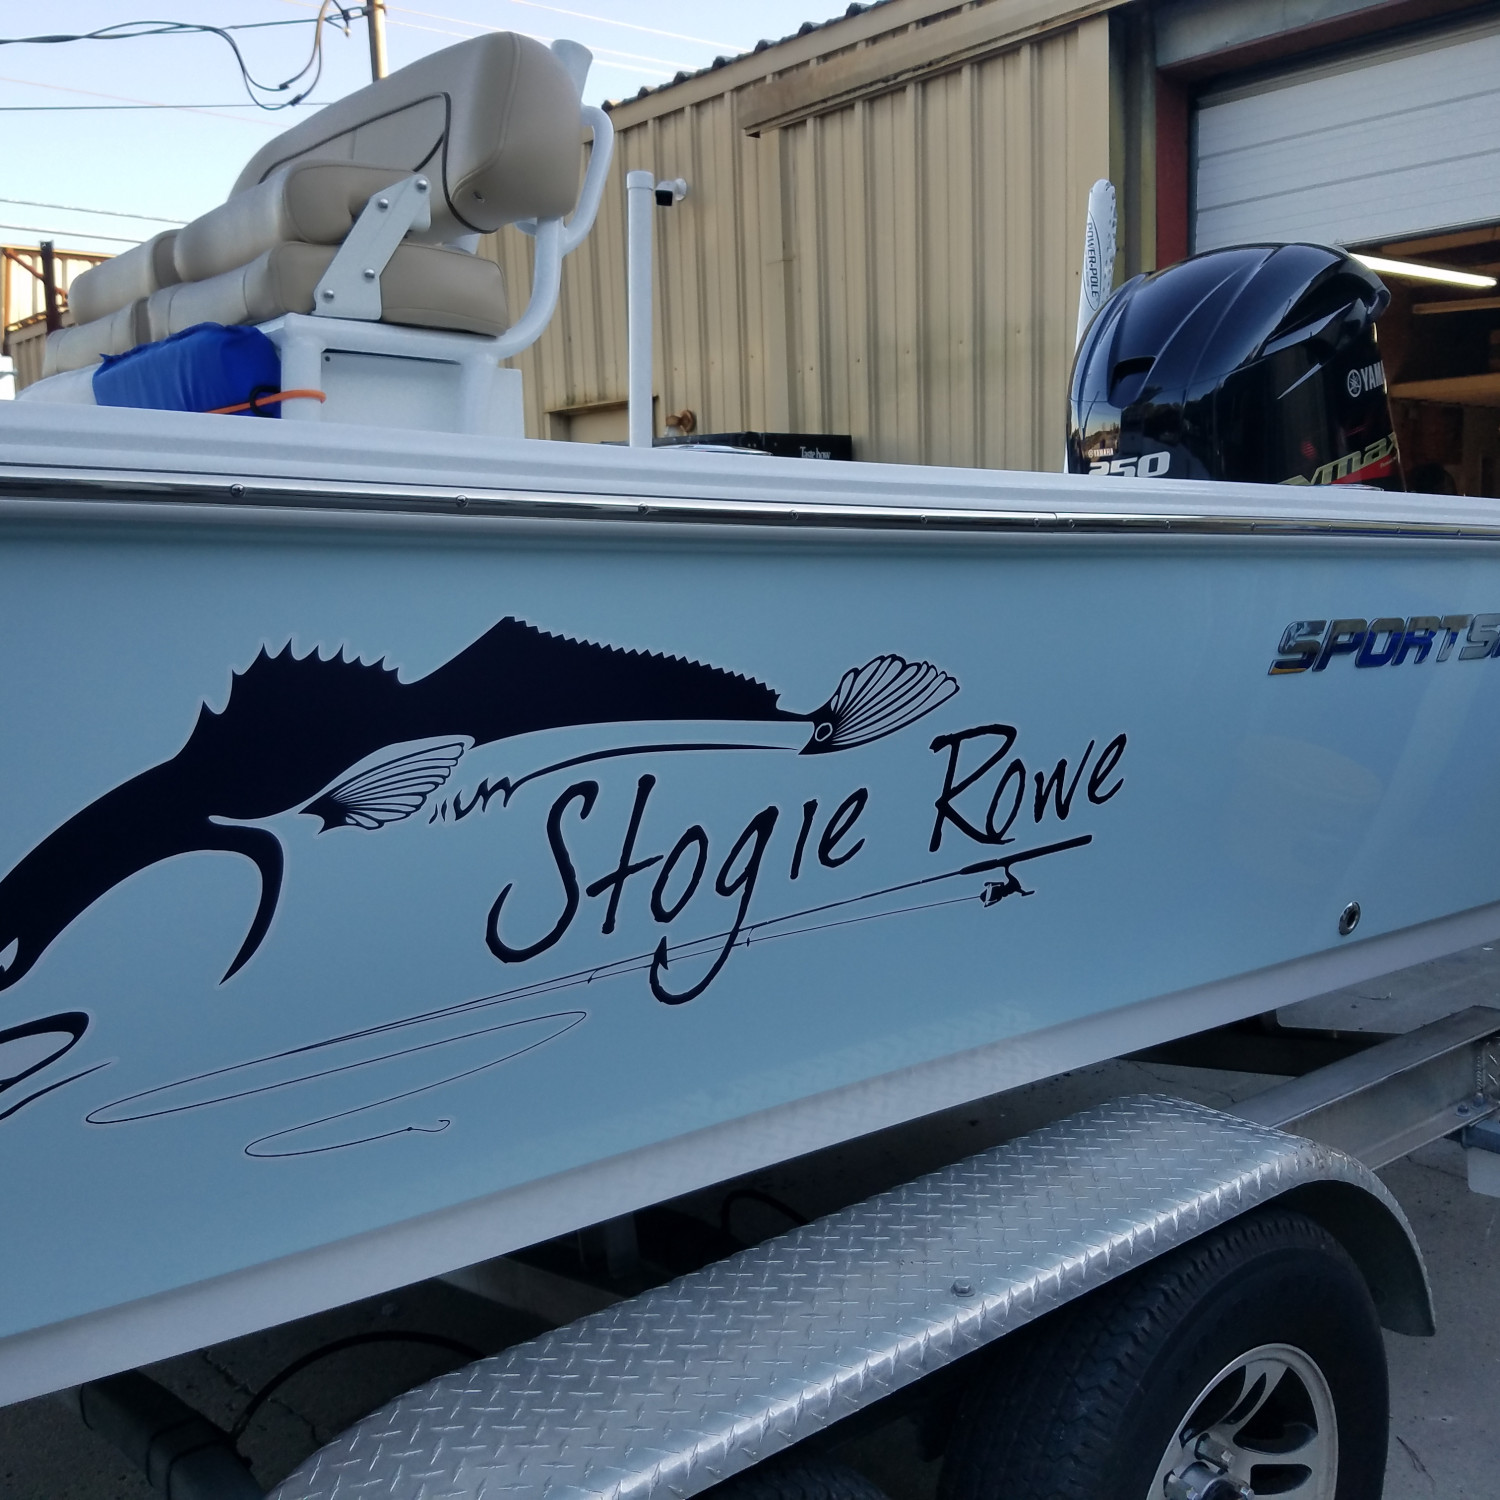 Title: The Stogie Rowe - On board their Sportsman Masters 247 Bay Boat - Location: Charleston SC. Participating in the Photo Contest #SportsmanNovember2017